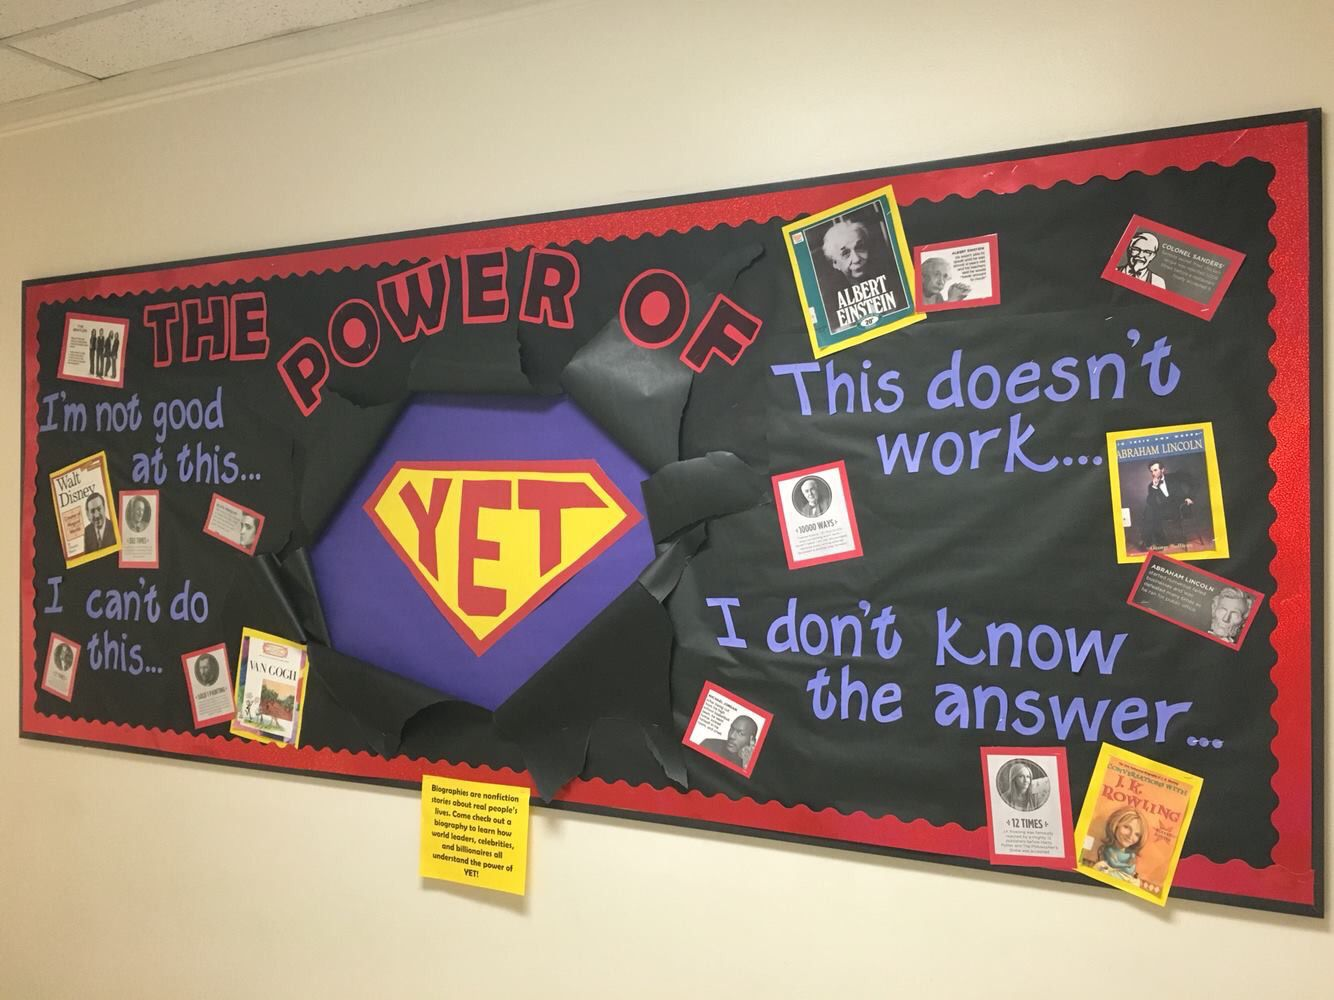 What An Amazing Bulletin Board Display The Power Of Yet